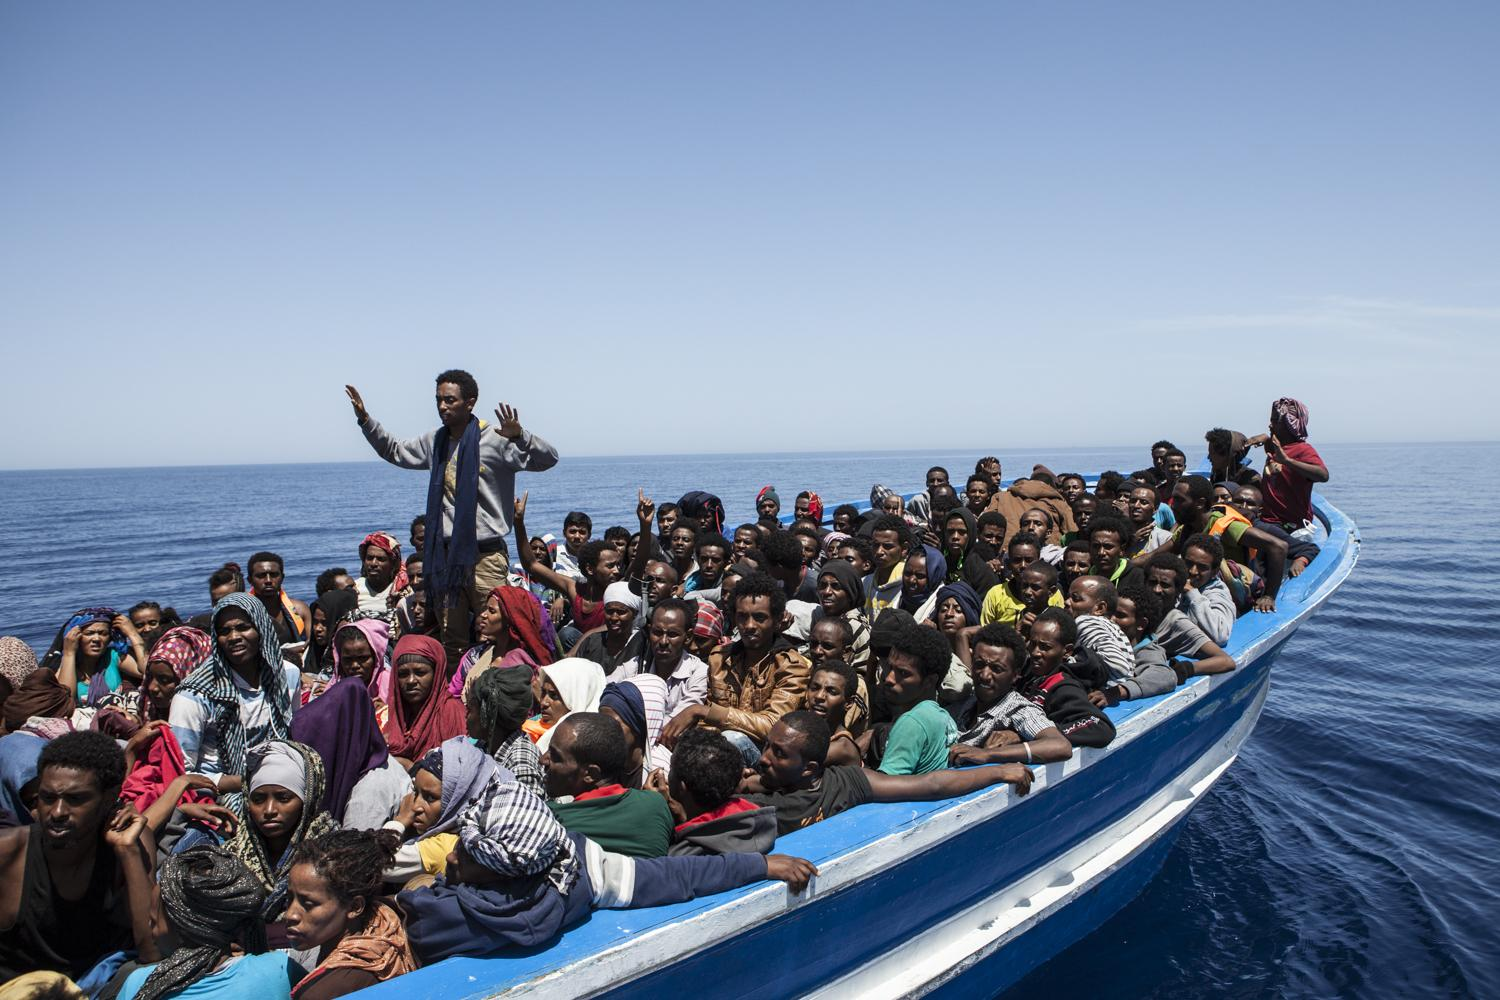 Mediterranean Refugees Migrant Offshore Aid Station (MOAS) 1